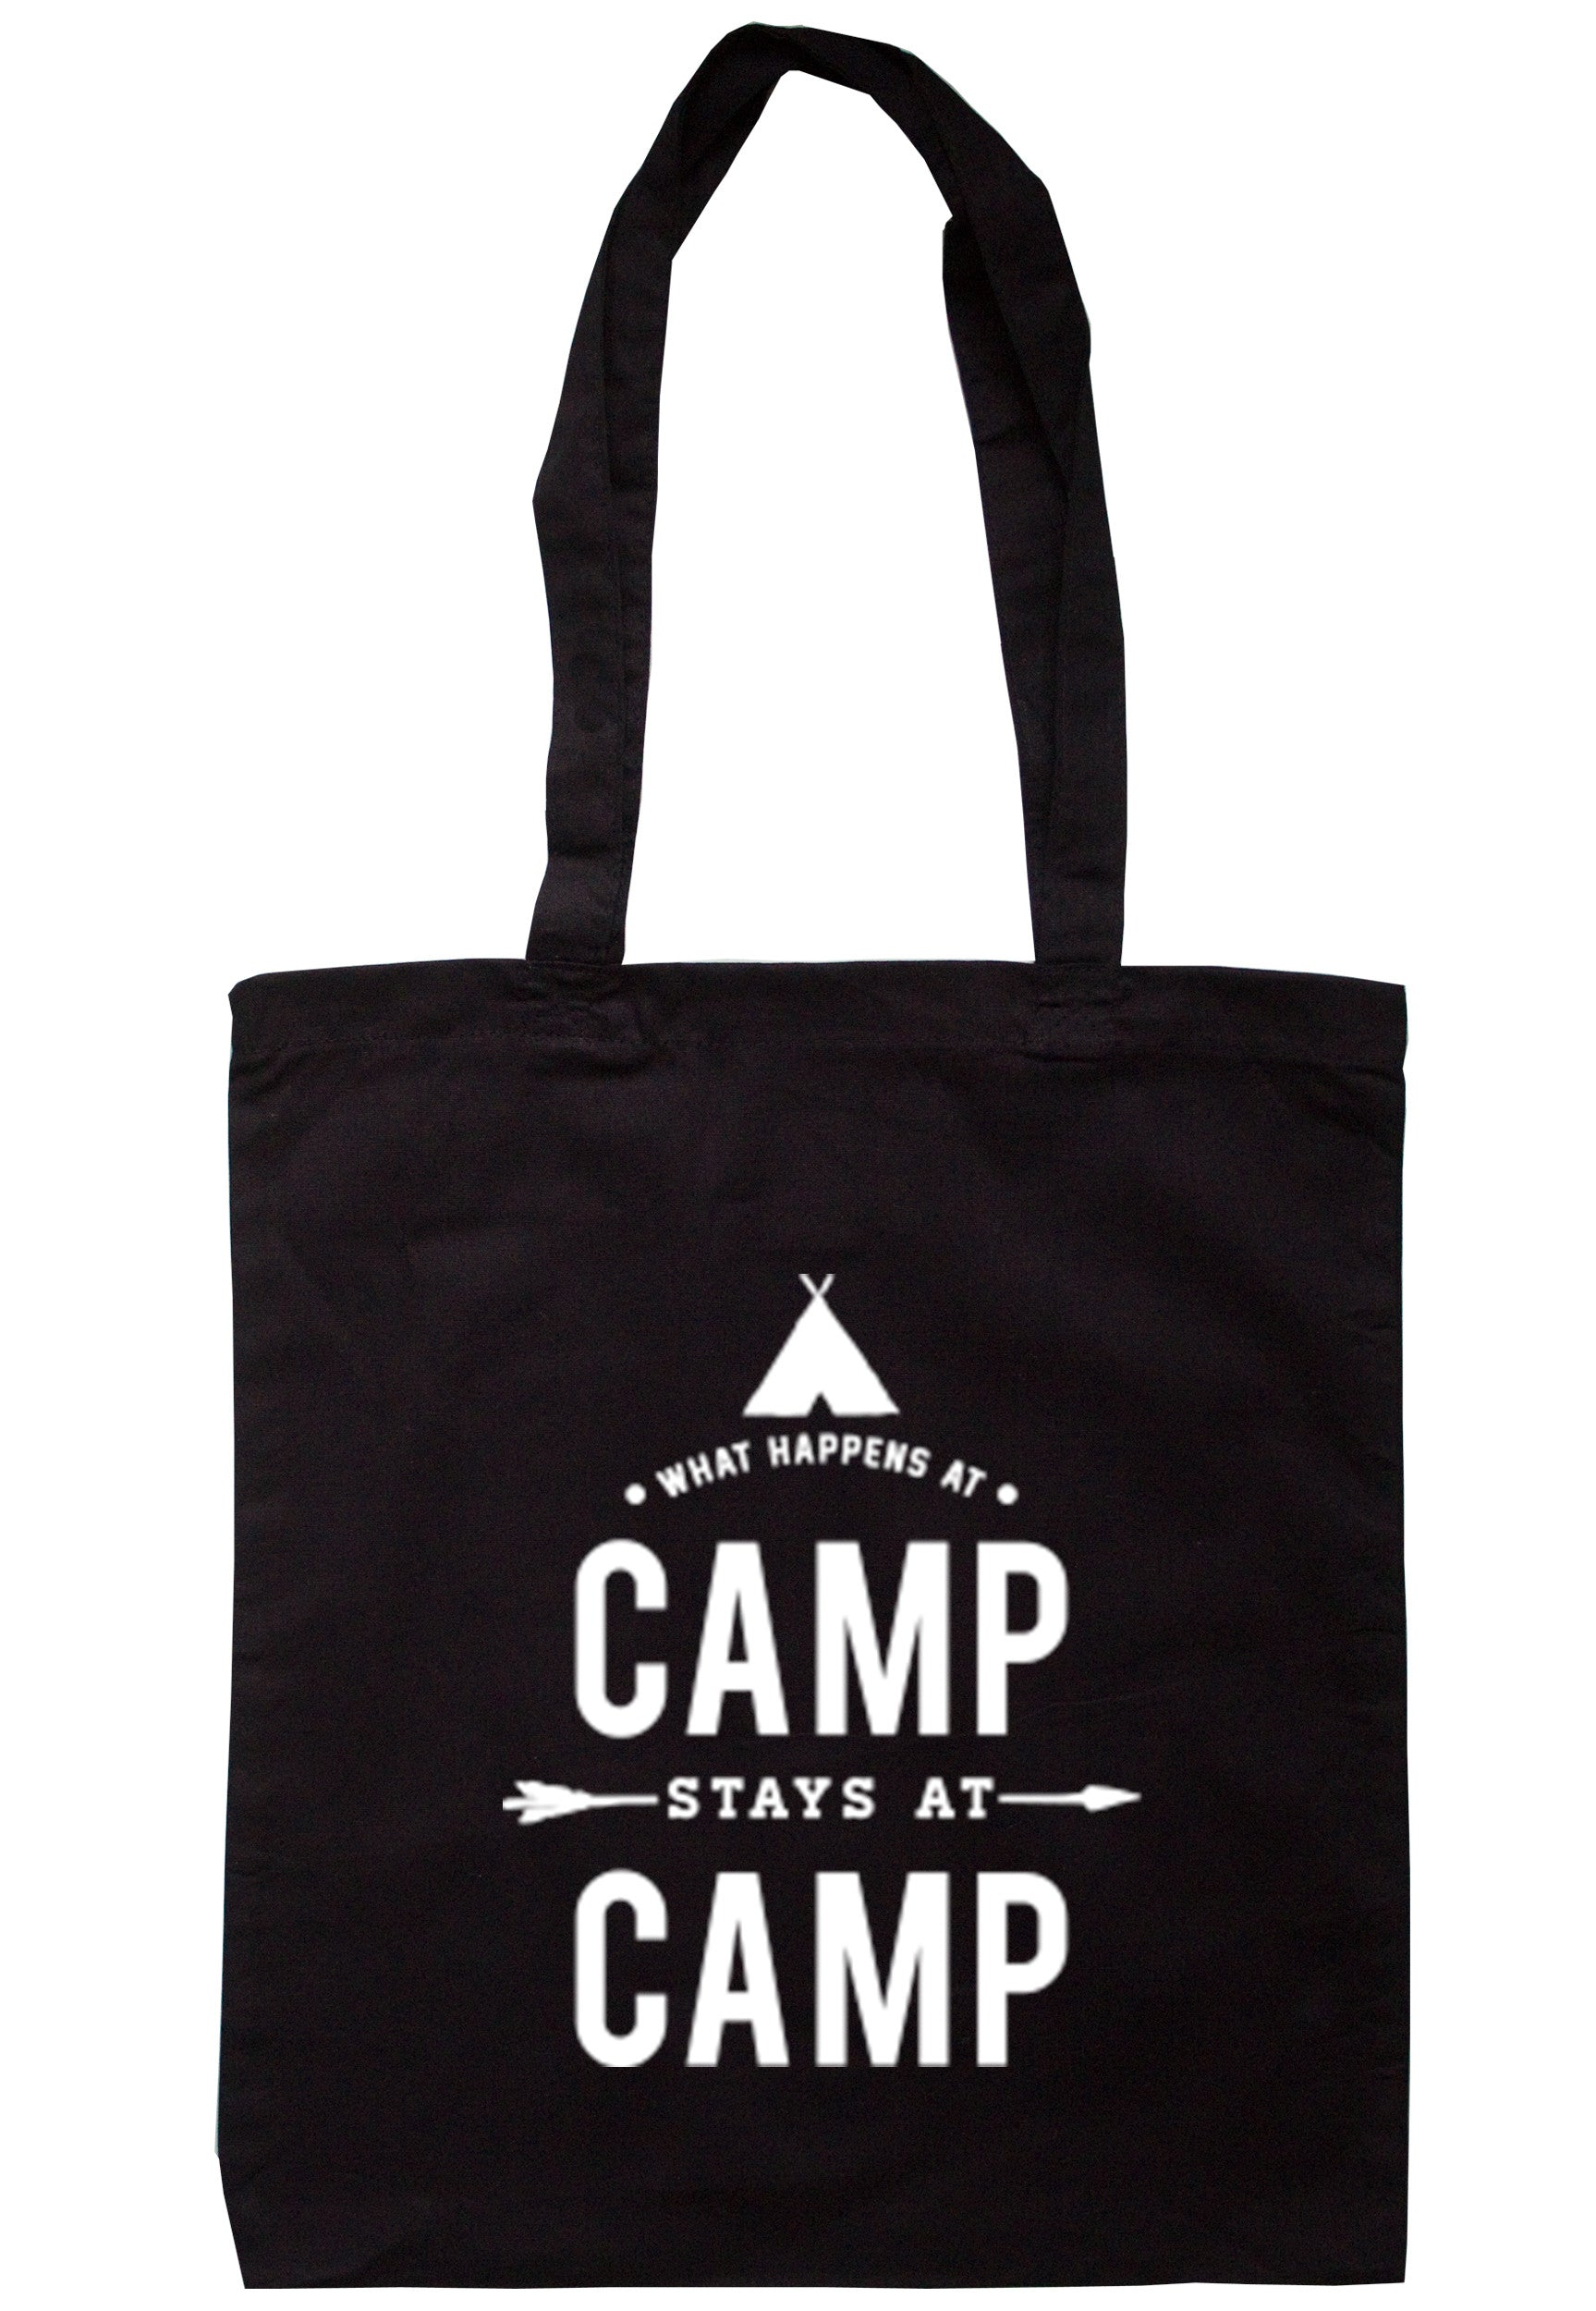 What Happens At Camp Stays At Camp  Tote Bag TB0333 - Illustrated Identity Ltd.